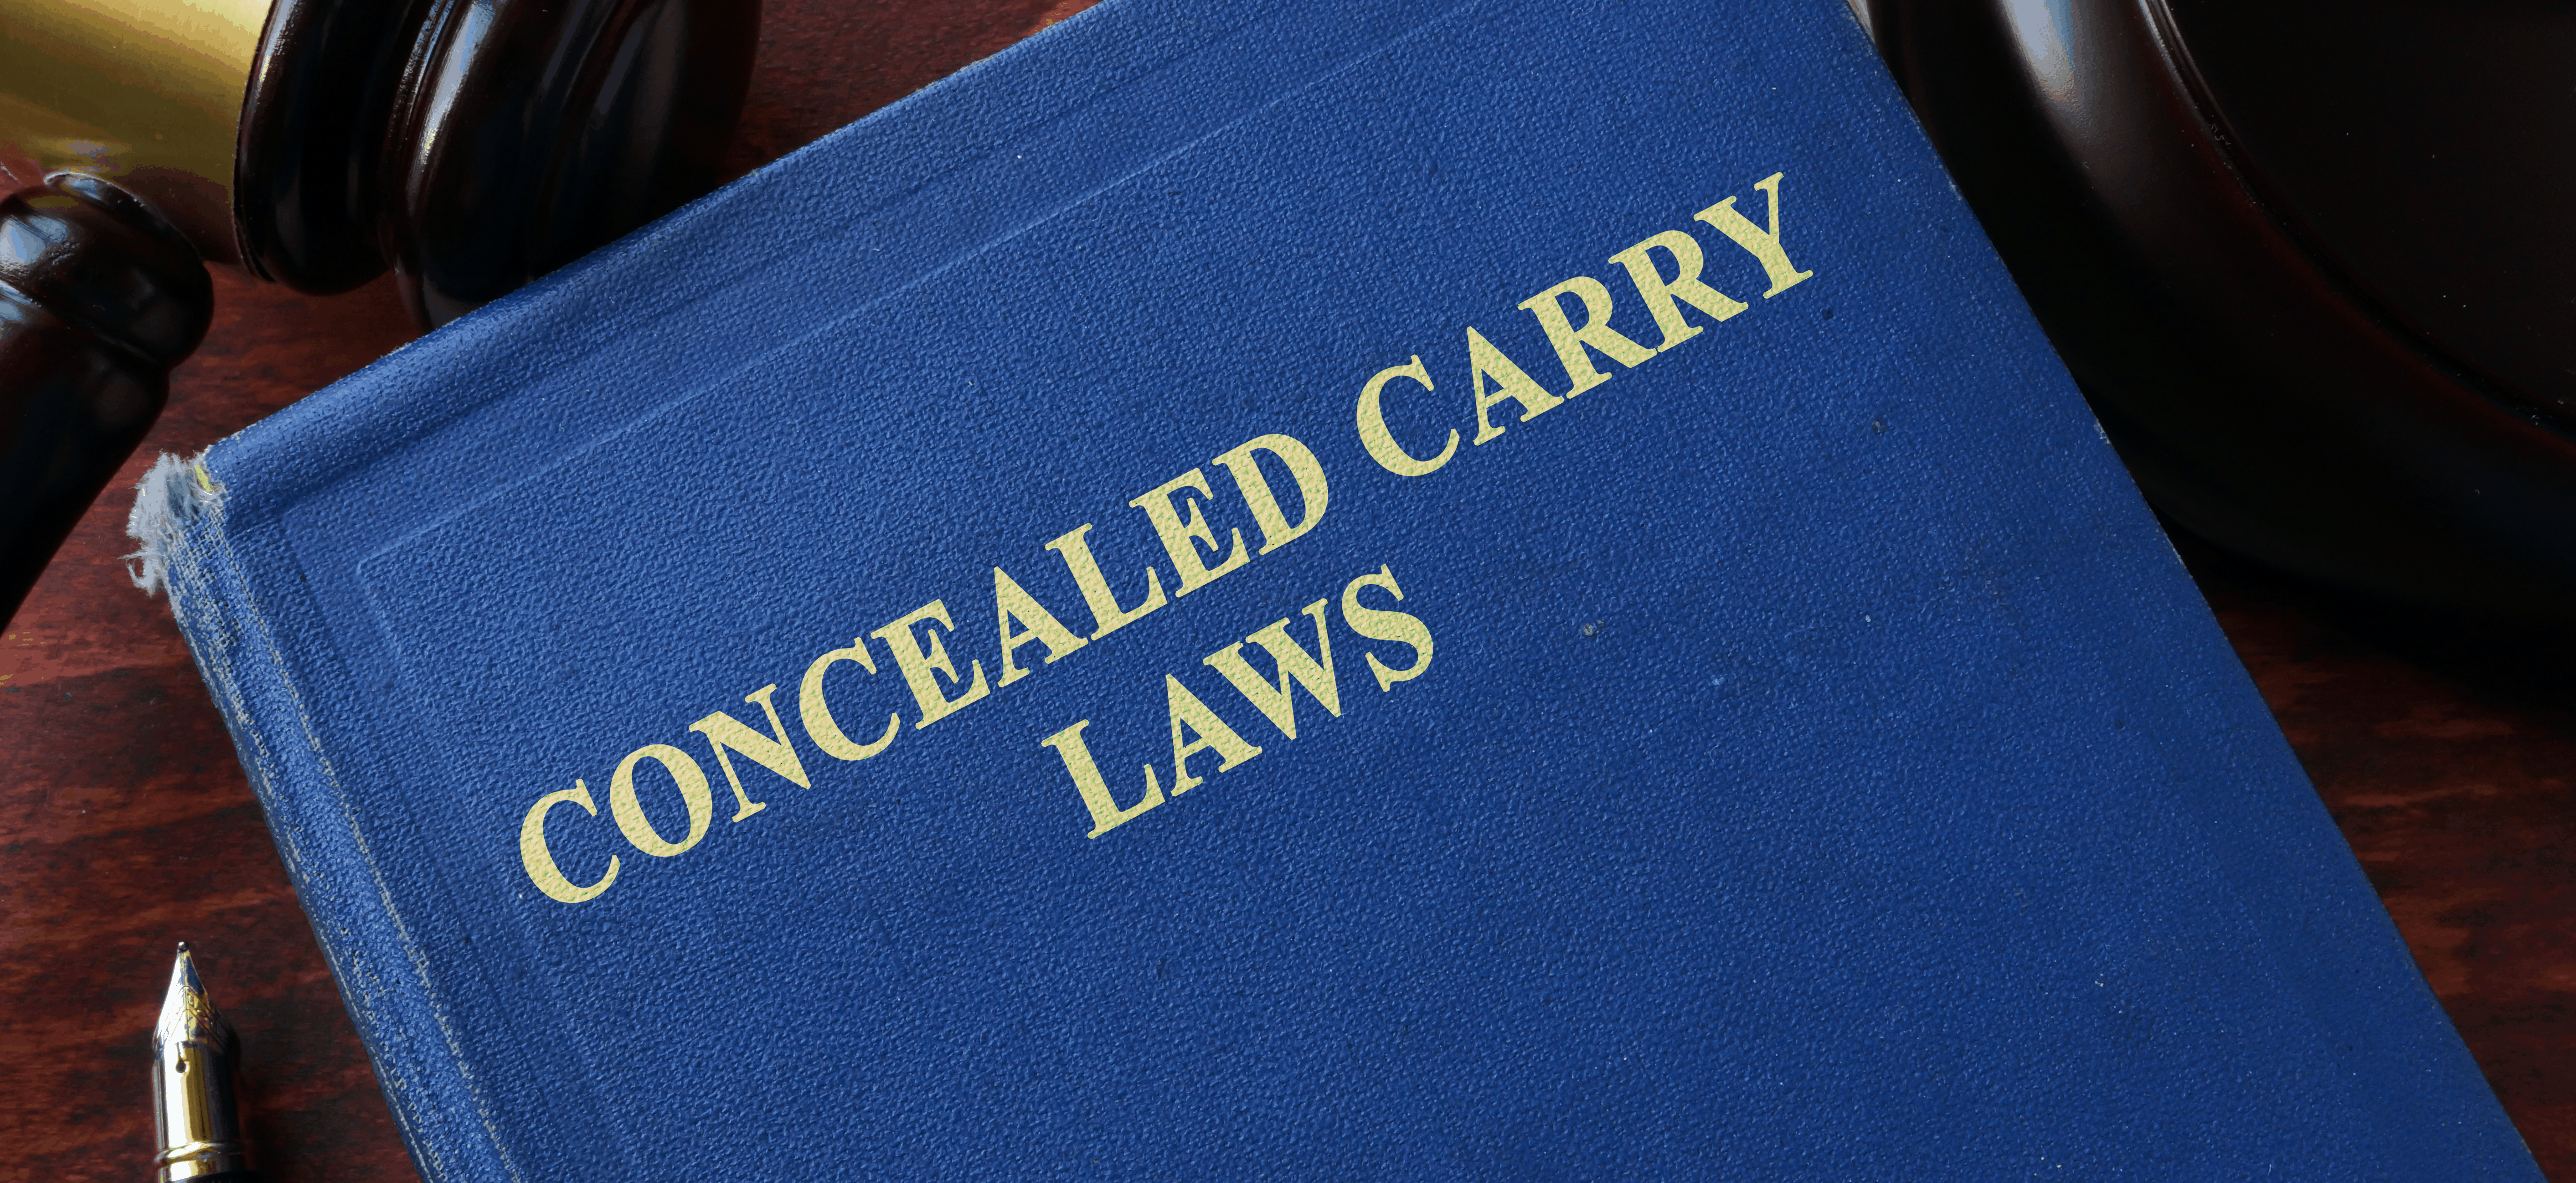 Concealed Carry Reciprocity Act